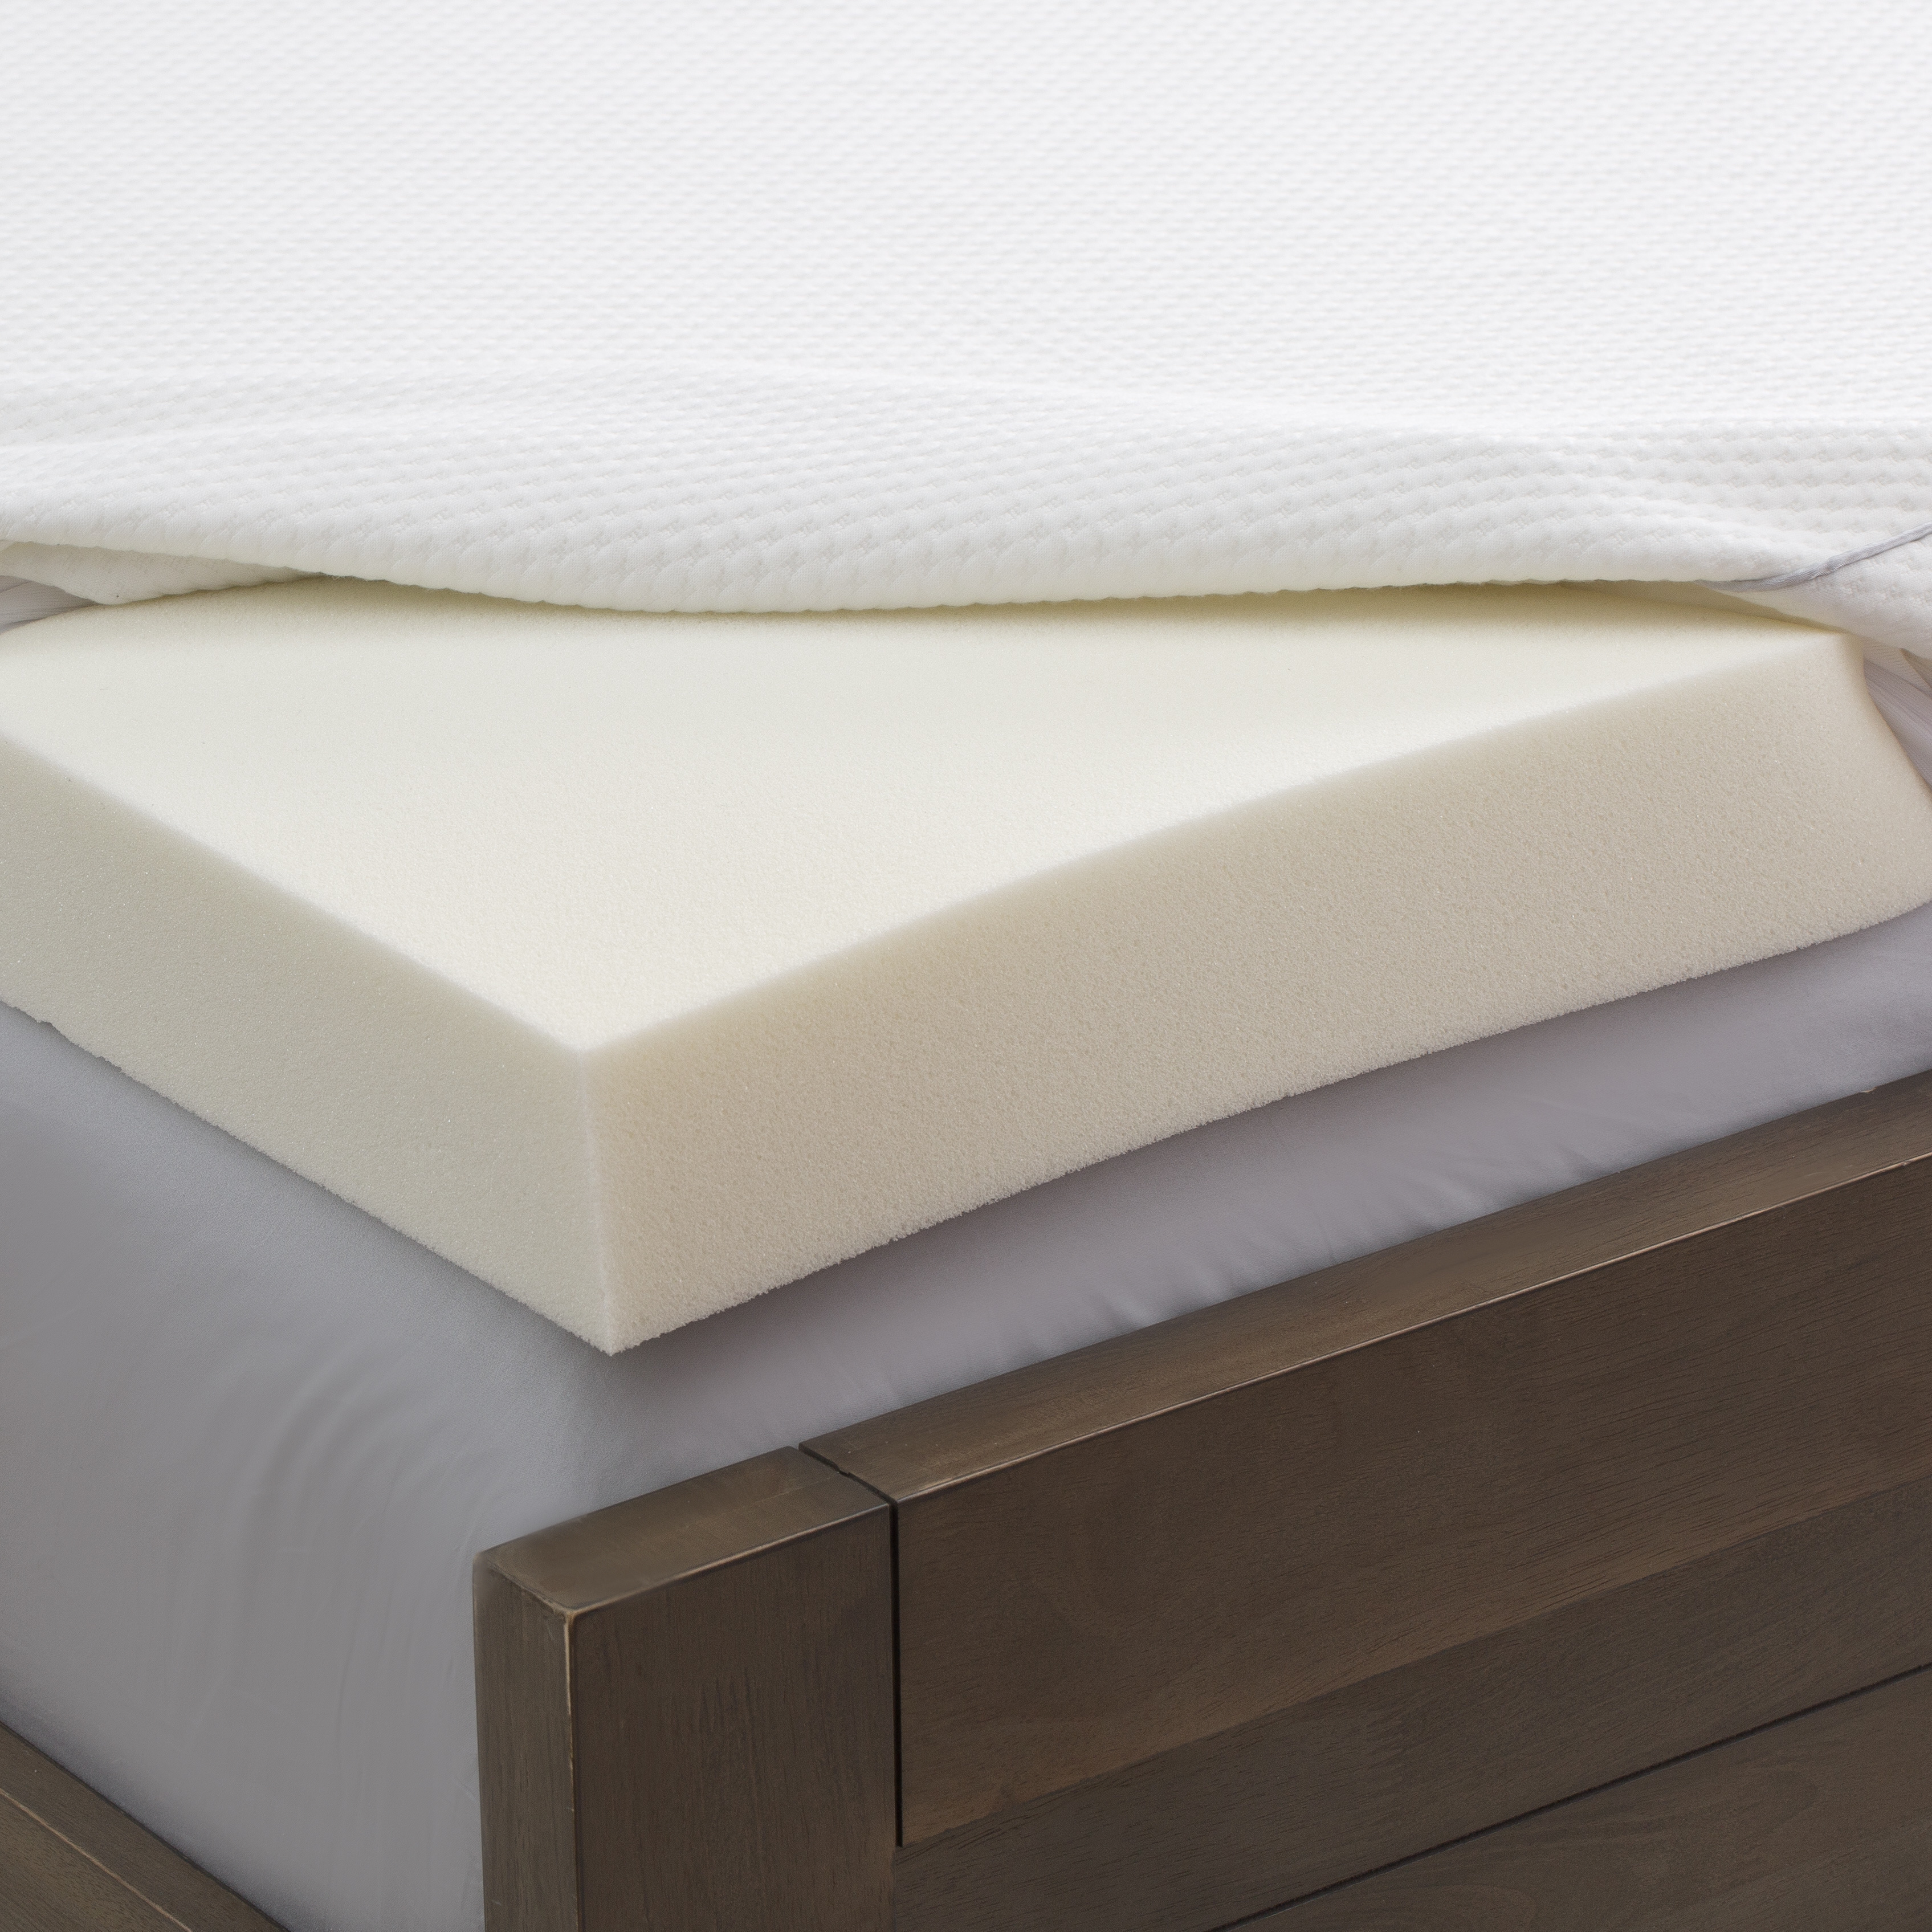 inch reviews topper box to size natural cool bed best for mattress latex a in buy memory foam sale rated king